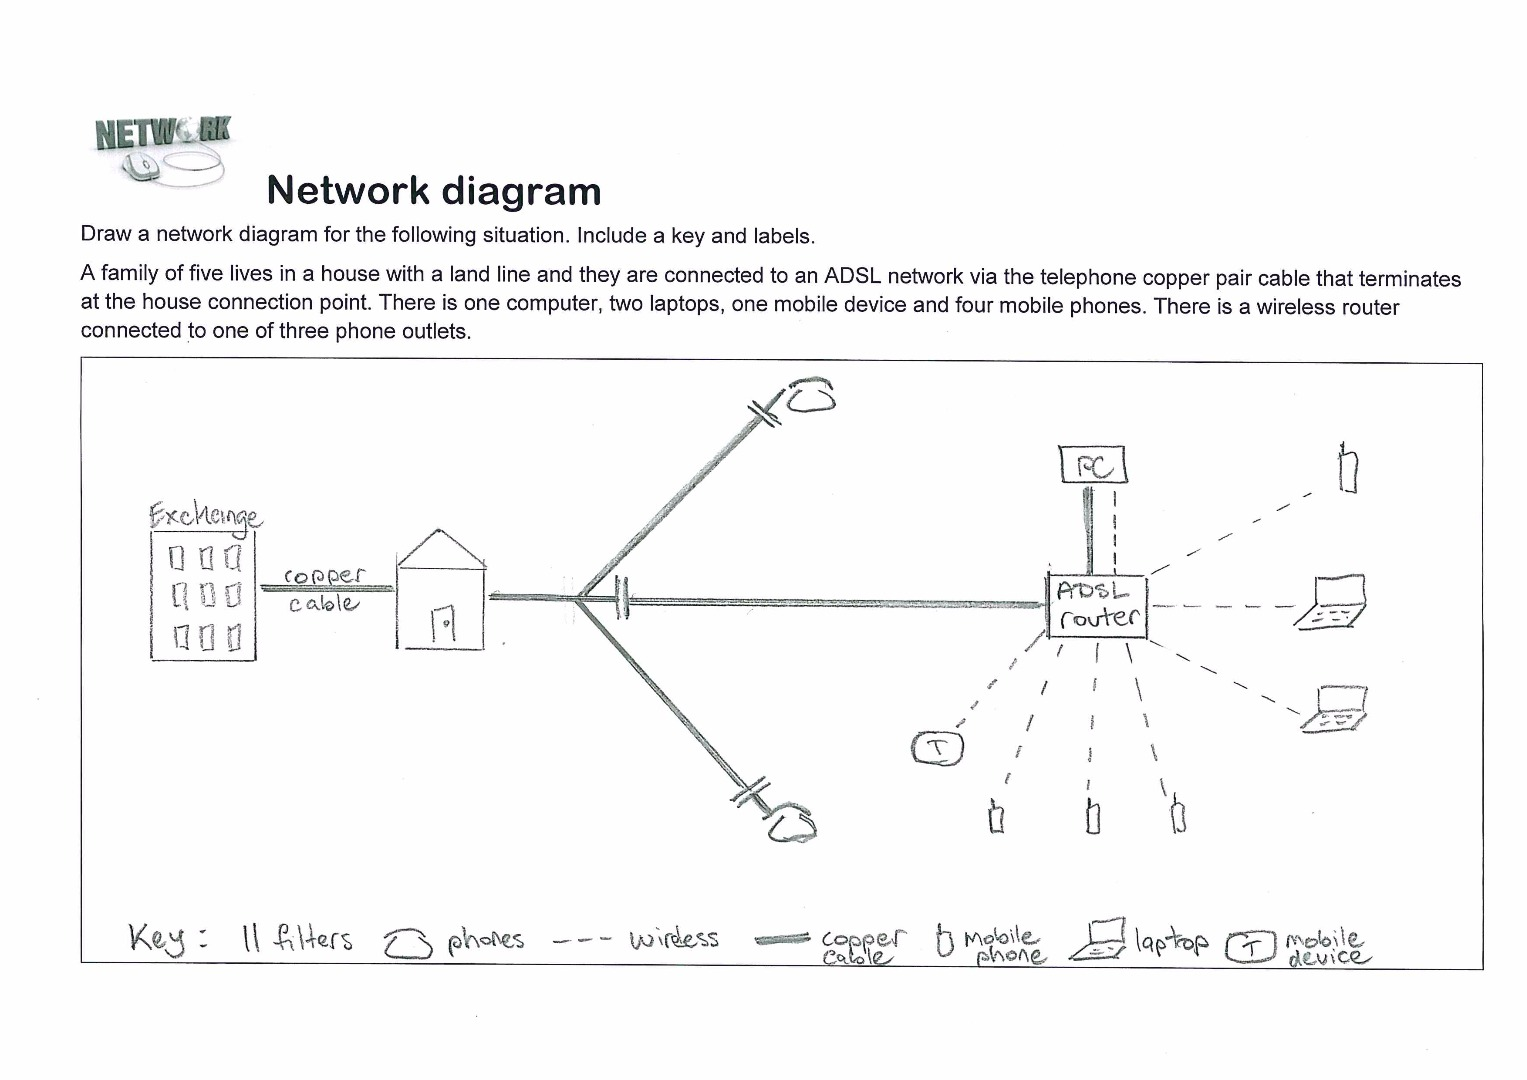 hight resolution of draws a diagram including complete detail of all connections and hardware and their locations in the infrastructure described in the given situation a